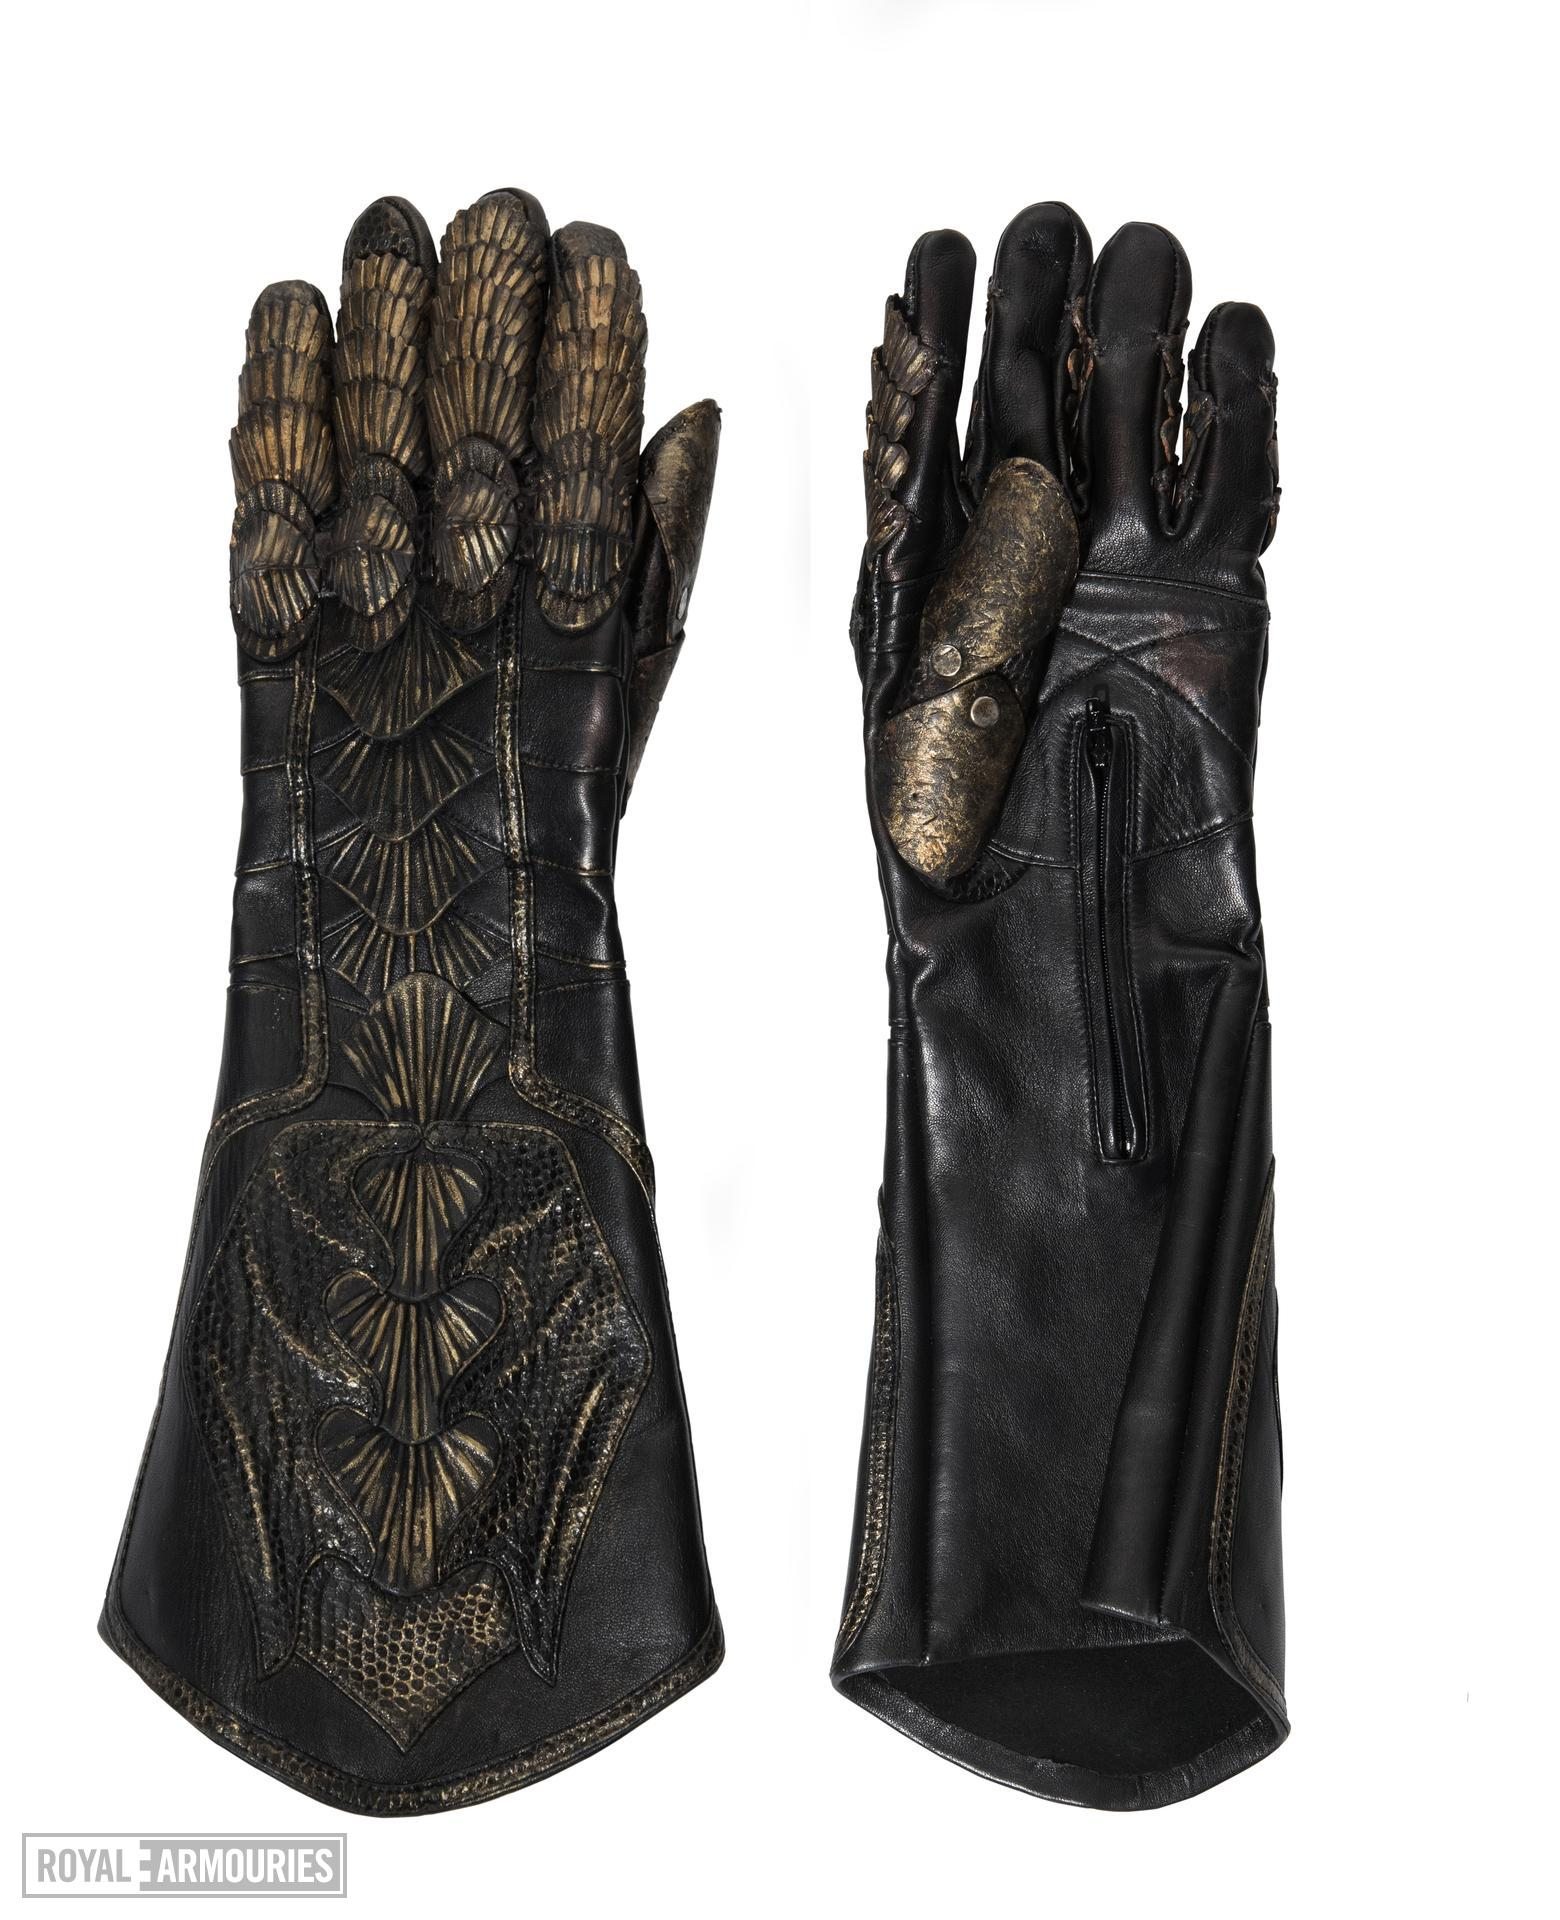 Left Glove - Left glove from The Lord Marshal's Costume